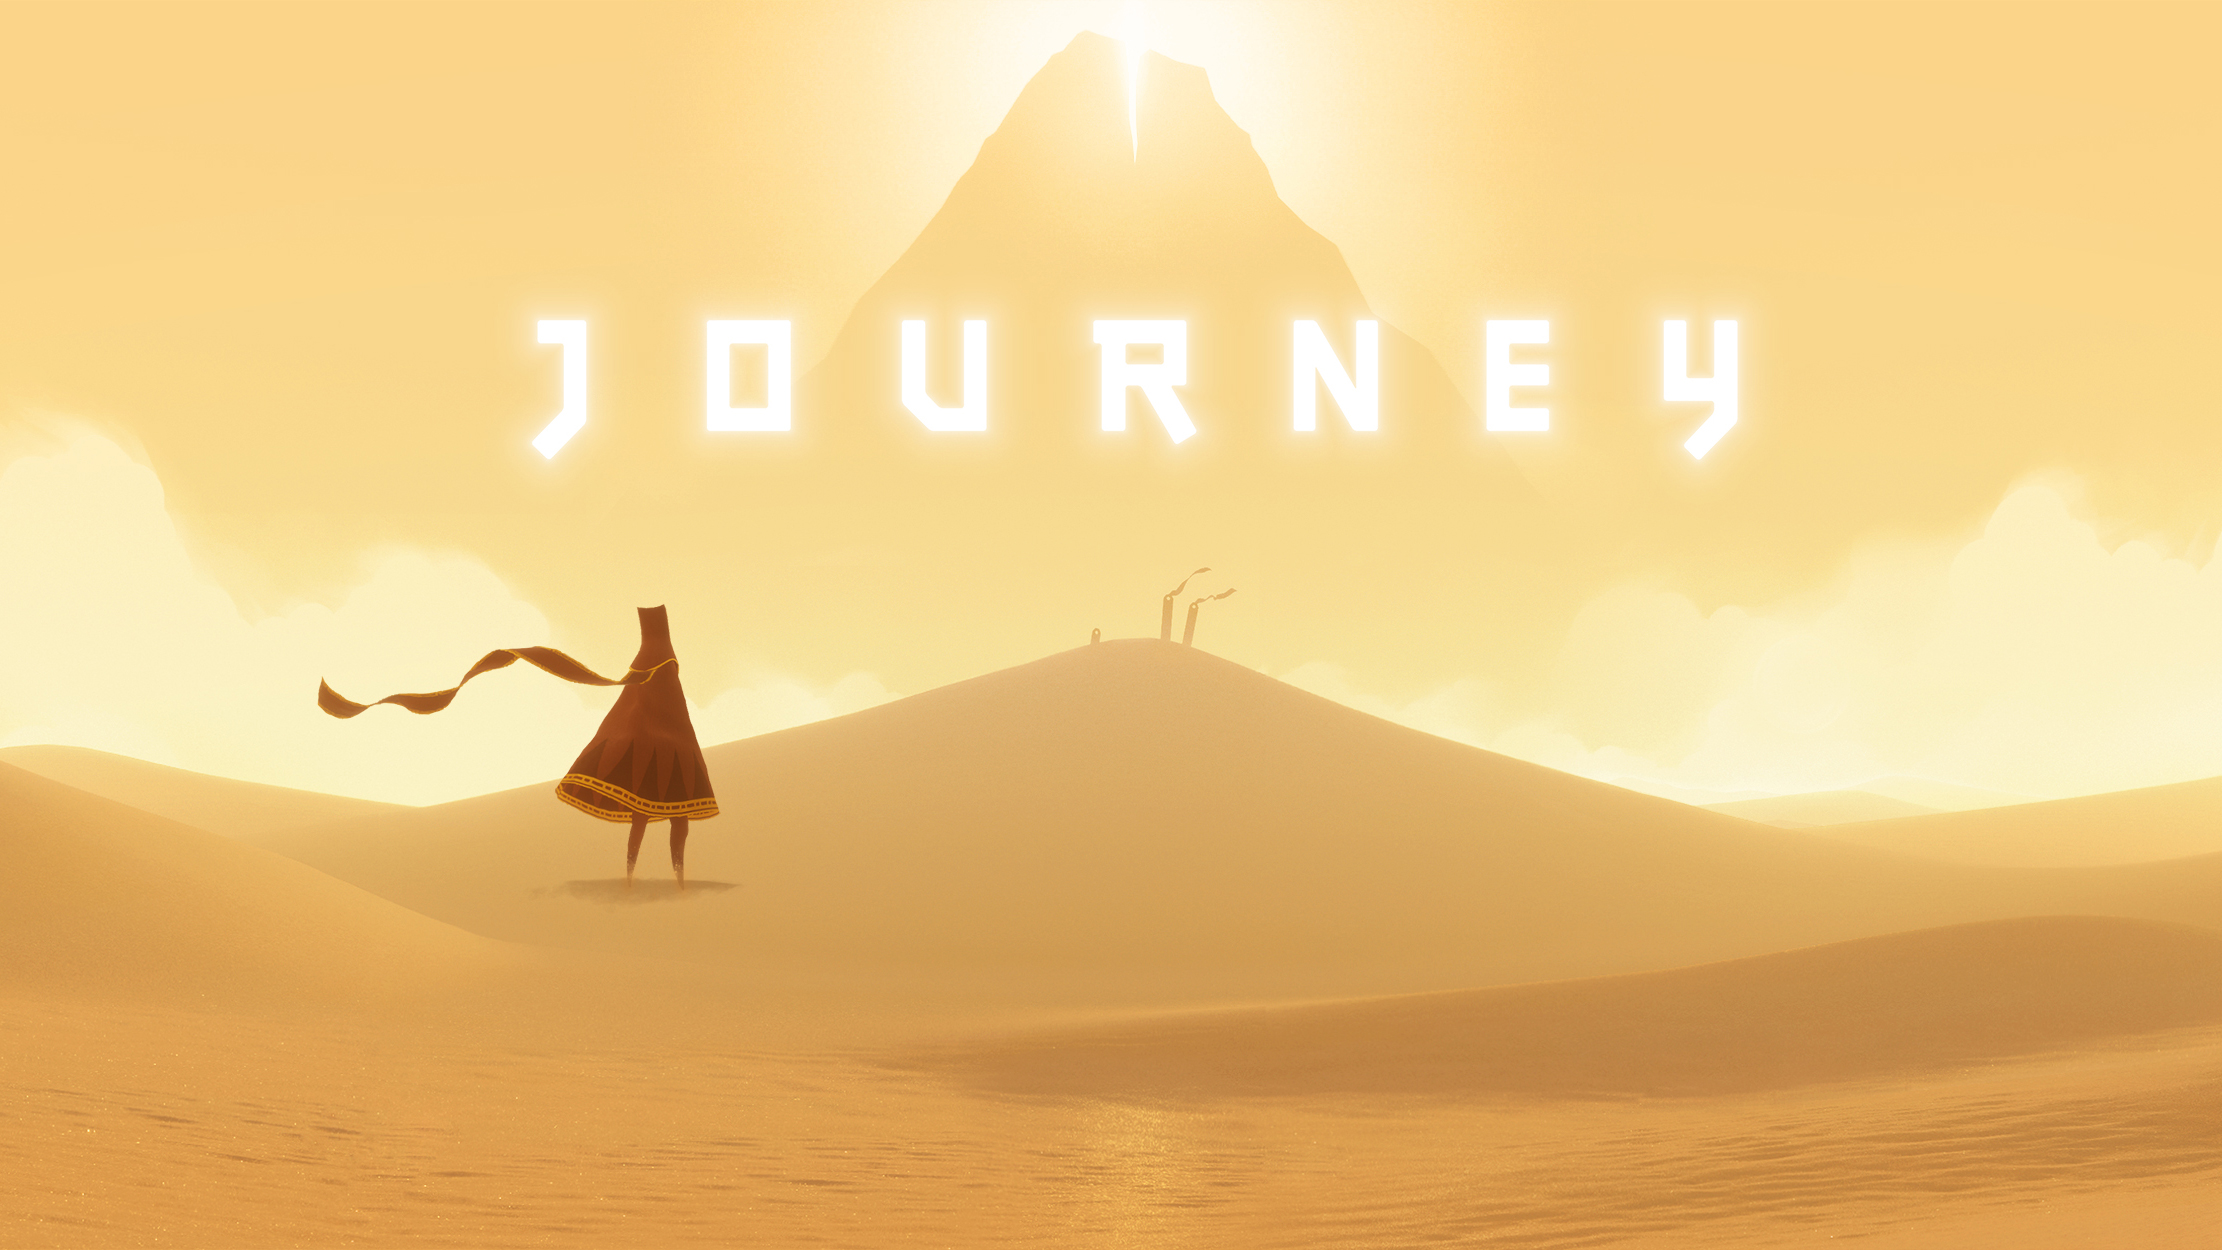 Title Screen from Journey